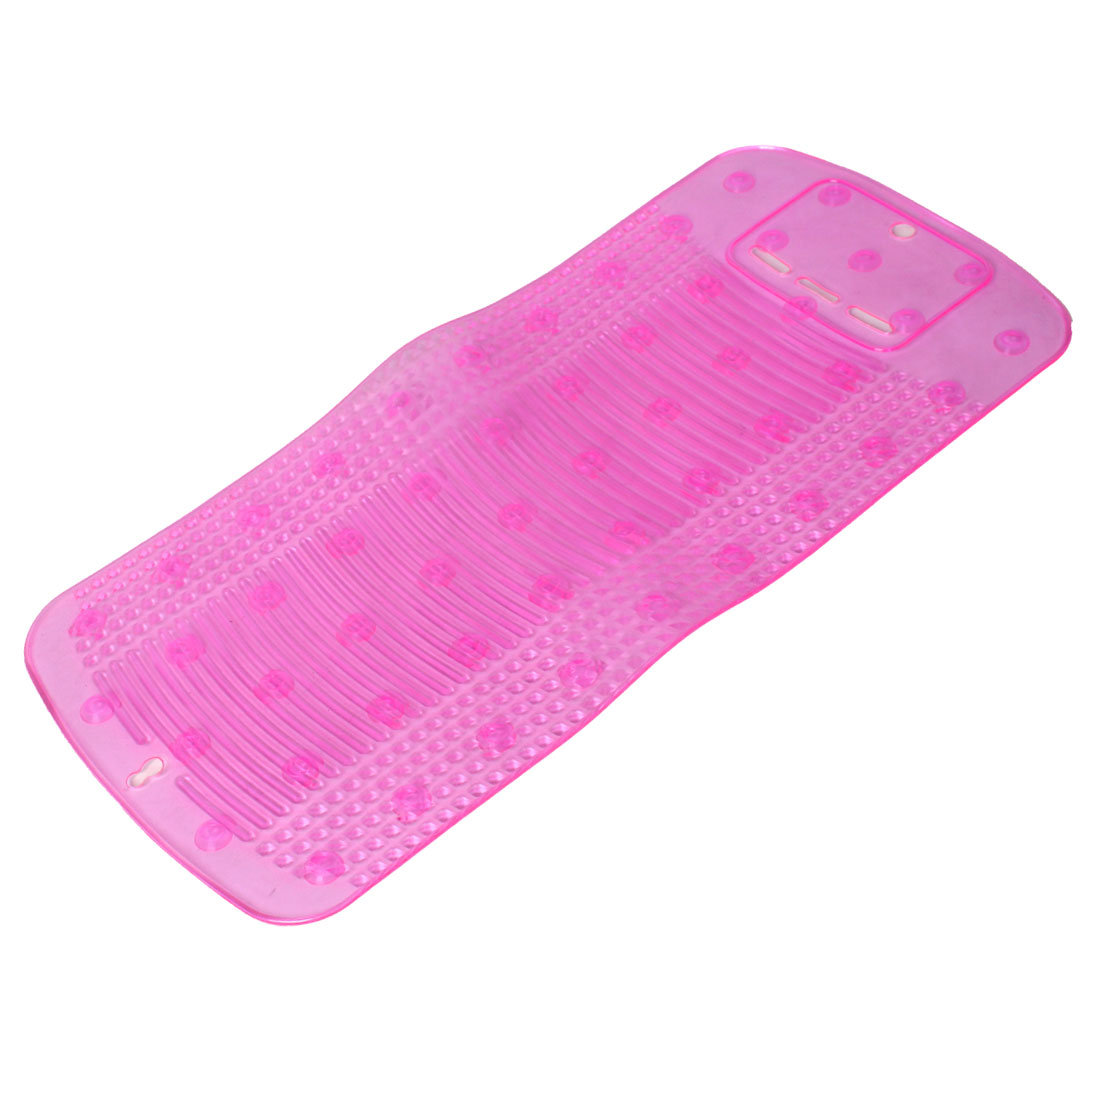 Fuchsia Silicone Rectangle Sucker Up Washboard Clothes Washing Laundry Board for Household